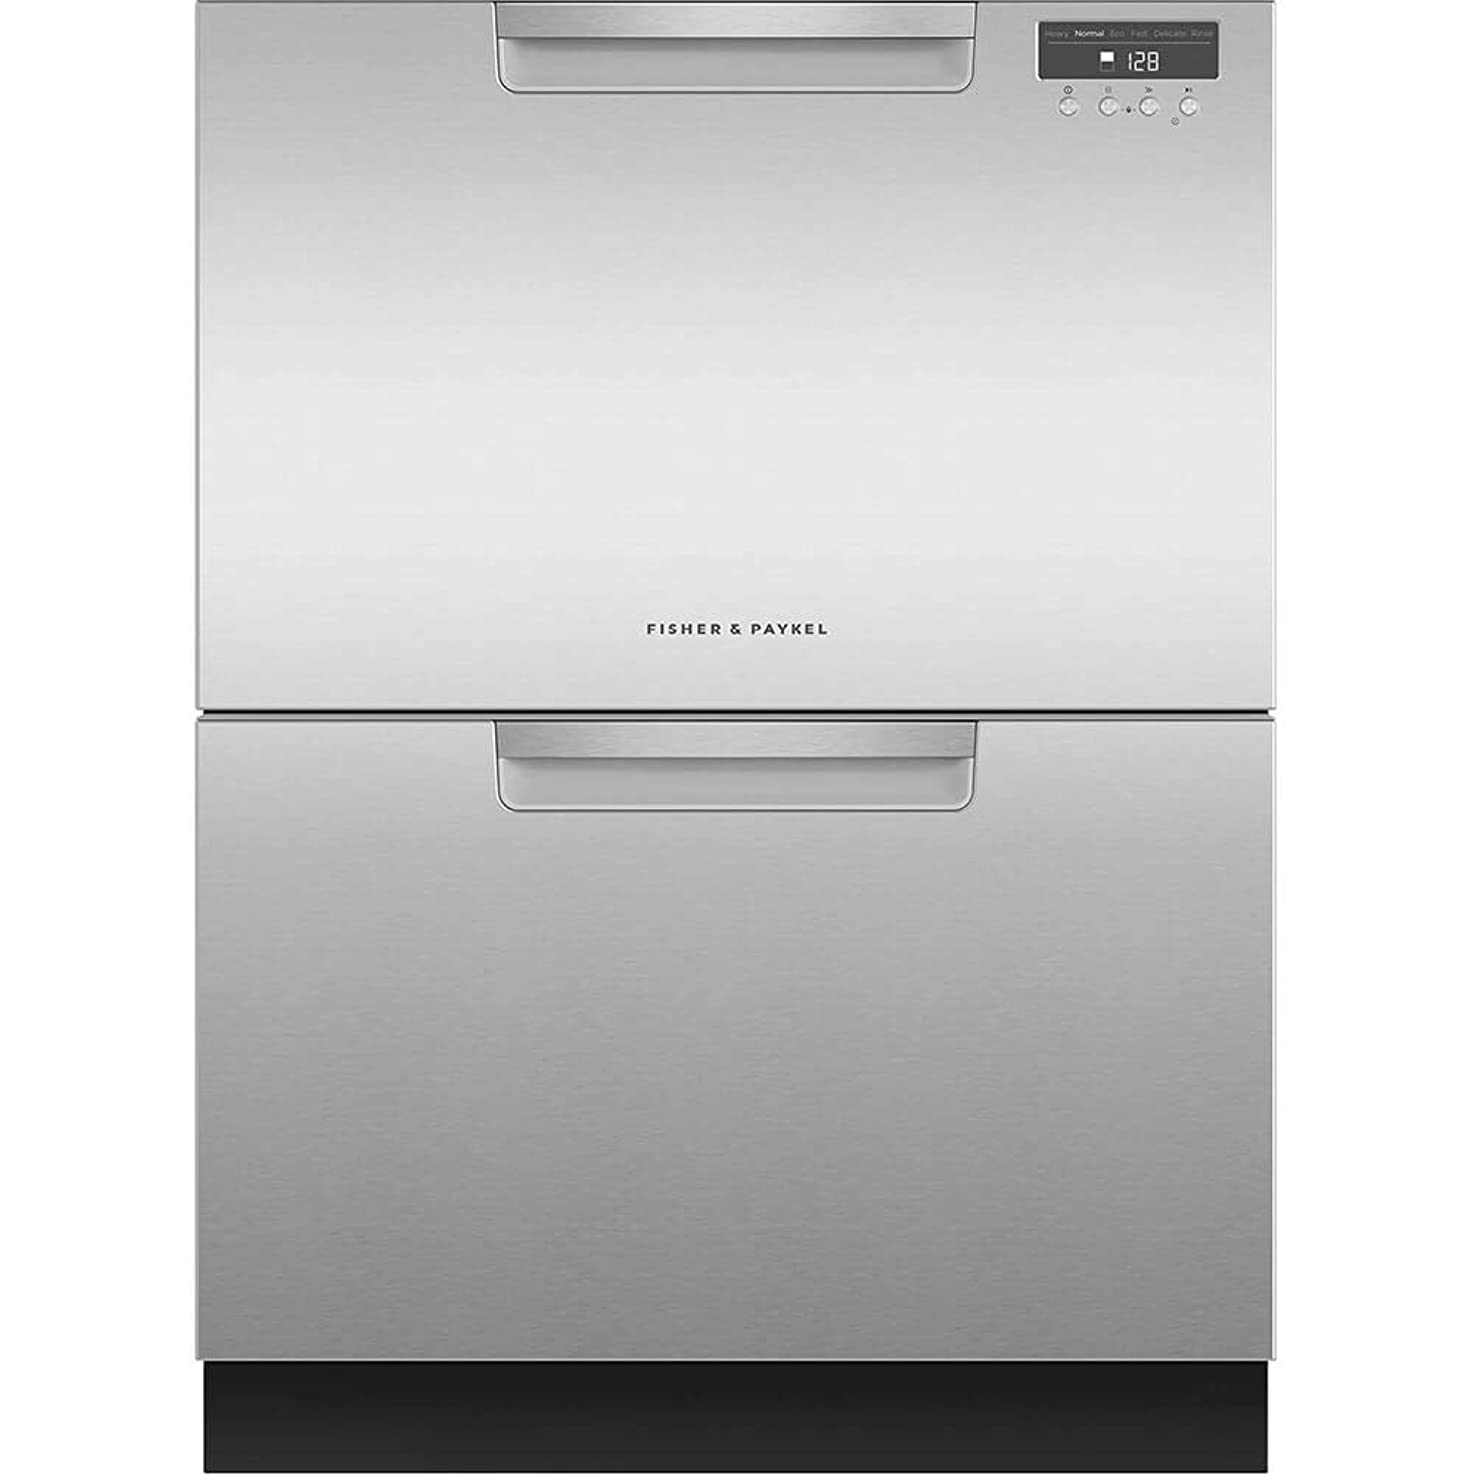 Fisher Paykel DD24DAX9N 24 Inch Drawers Full Console Dishwasher with 6 Wash Cycles, 14 Place Settings, Quick Wash, in Stainless Steel bjpnypvhxezvn0